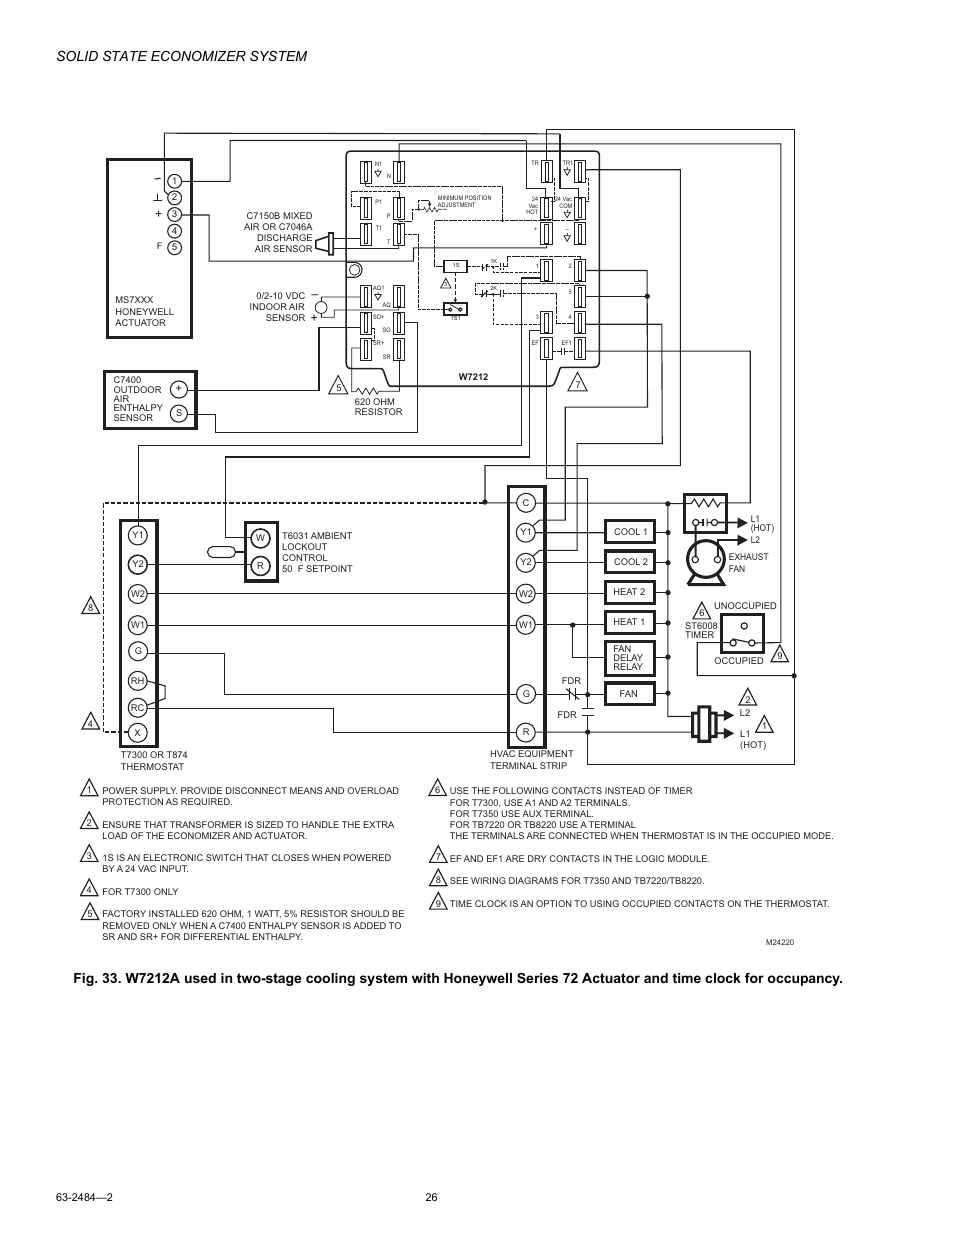 Honeywell T7300 Wiring Diagram 30 Images Economizer M8405 Page26 Solid State System User Manual Page